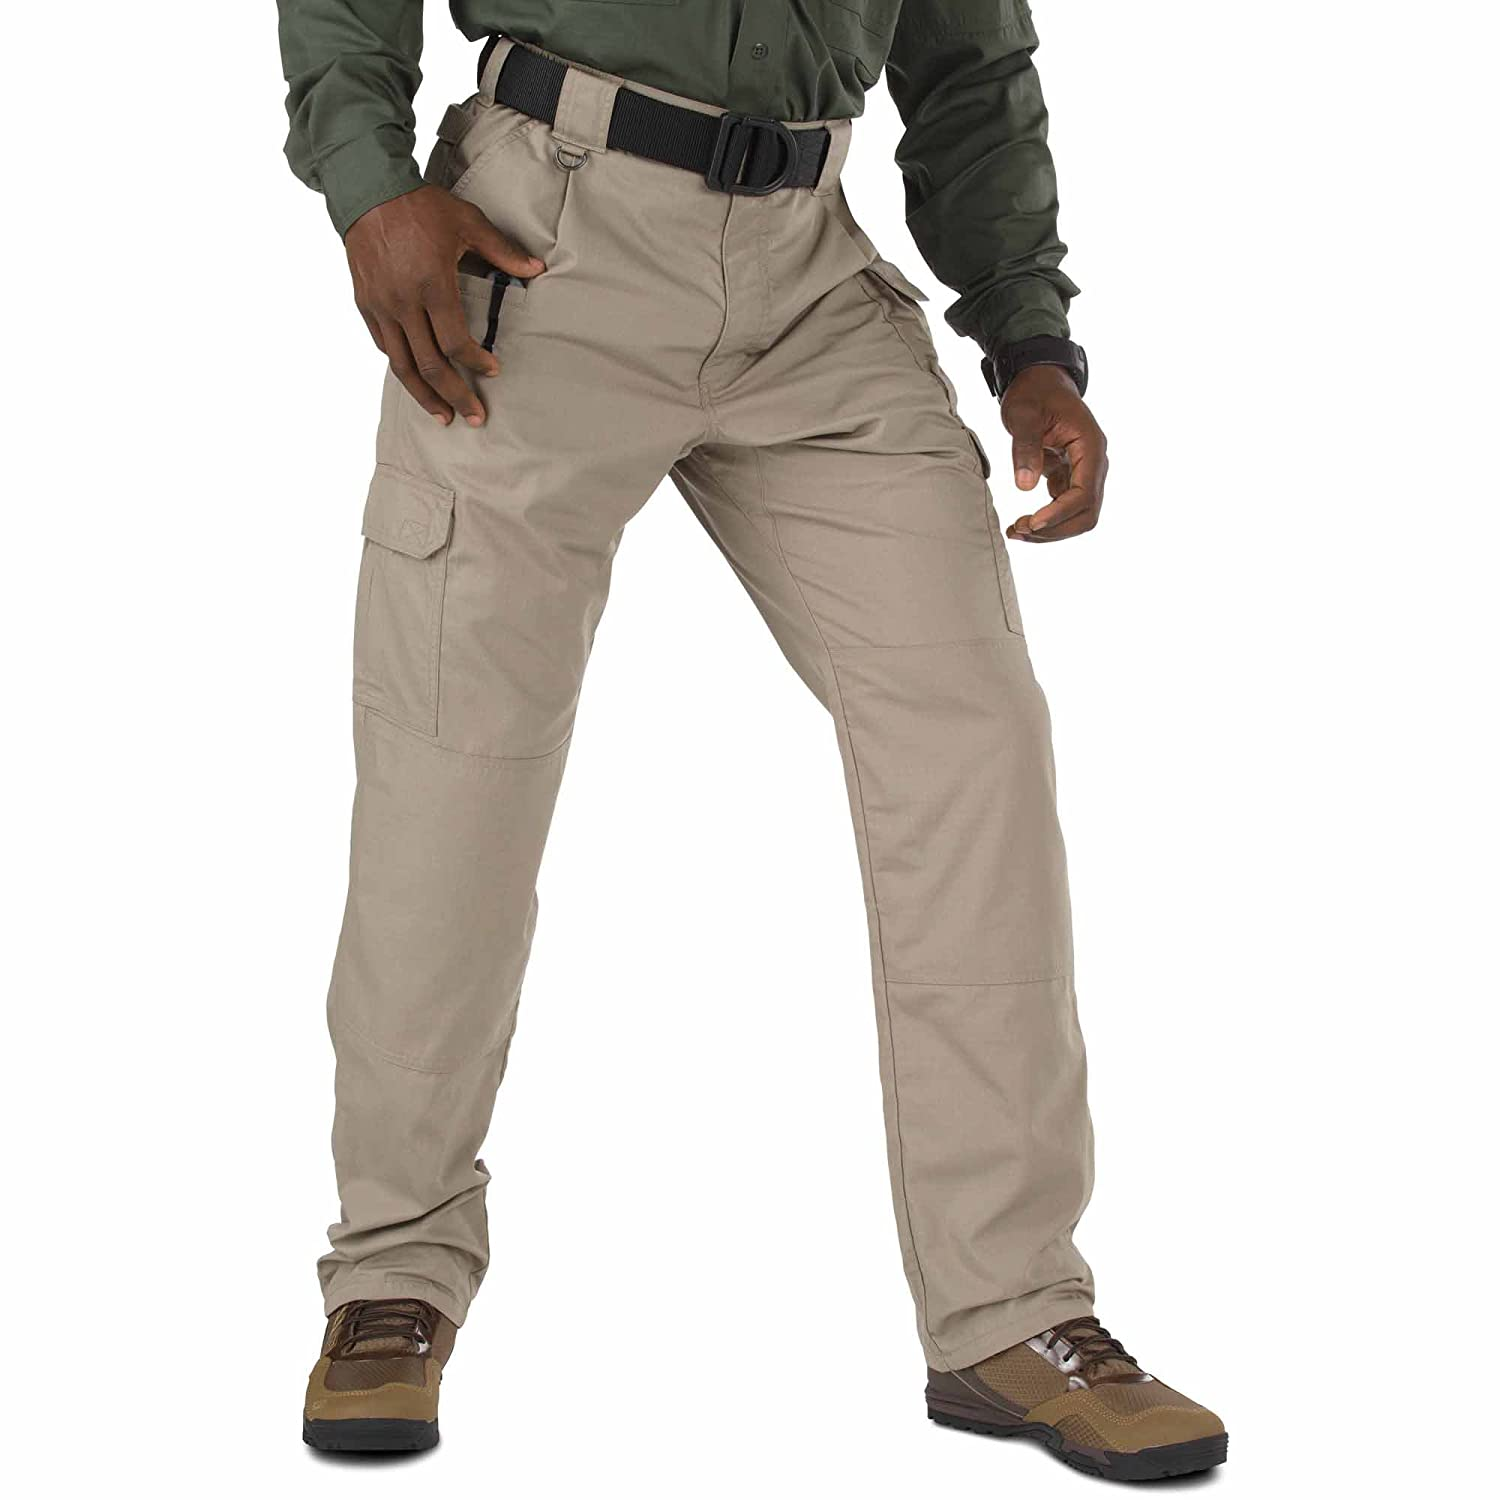 5.11 Men's Taclite Pro Tactical Pants, Style 74273 5.11 Tactical Apparel 74273-070-P